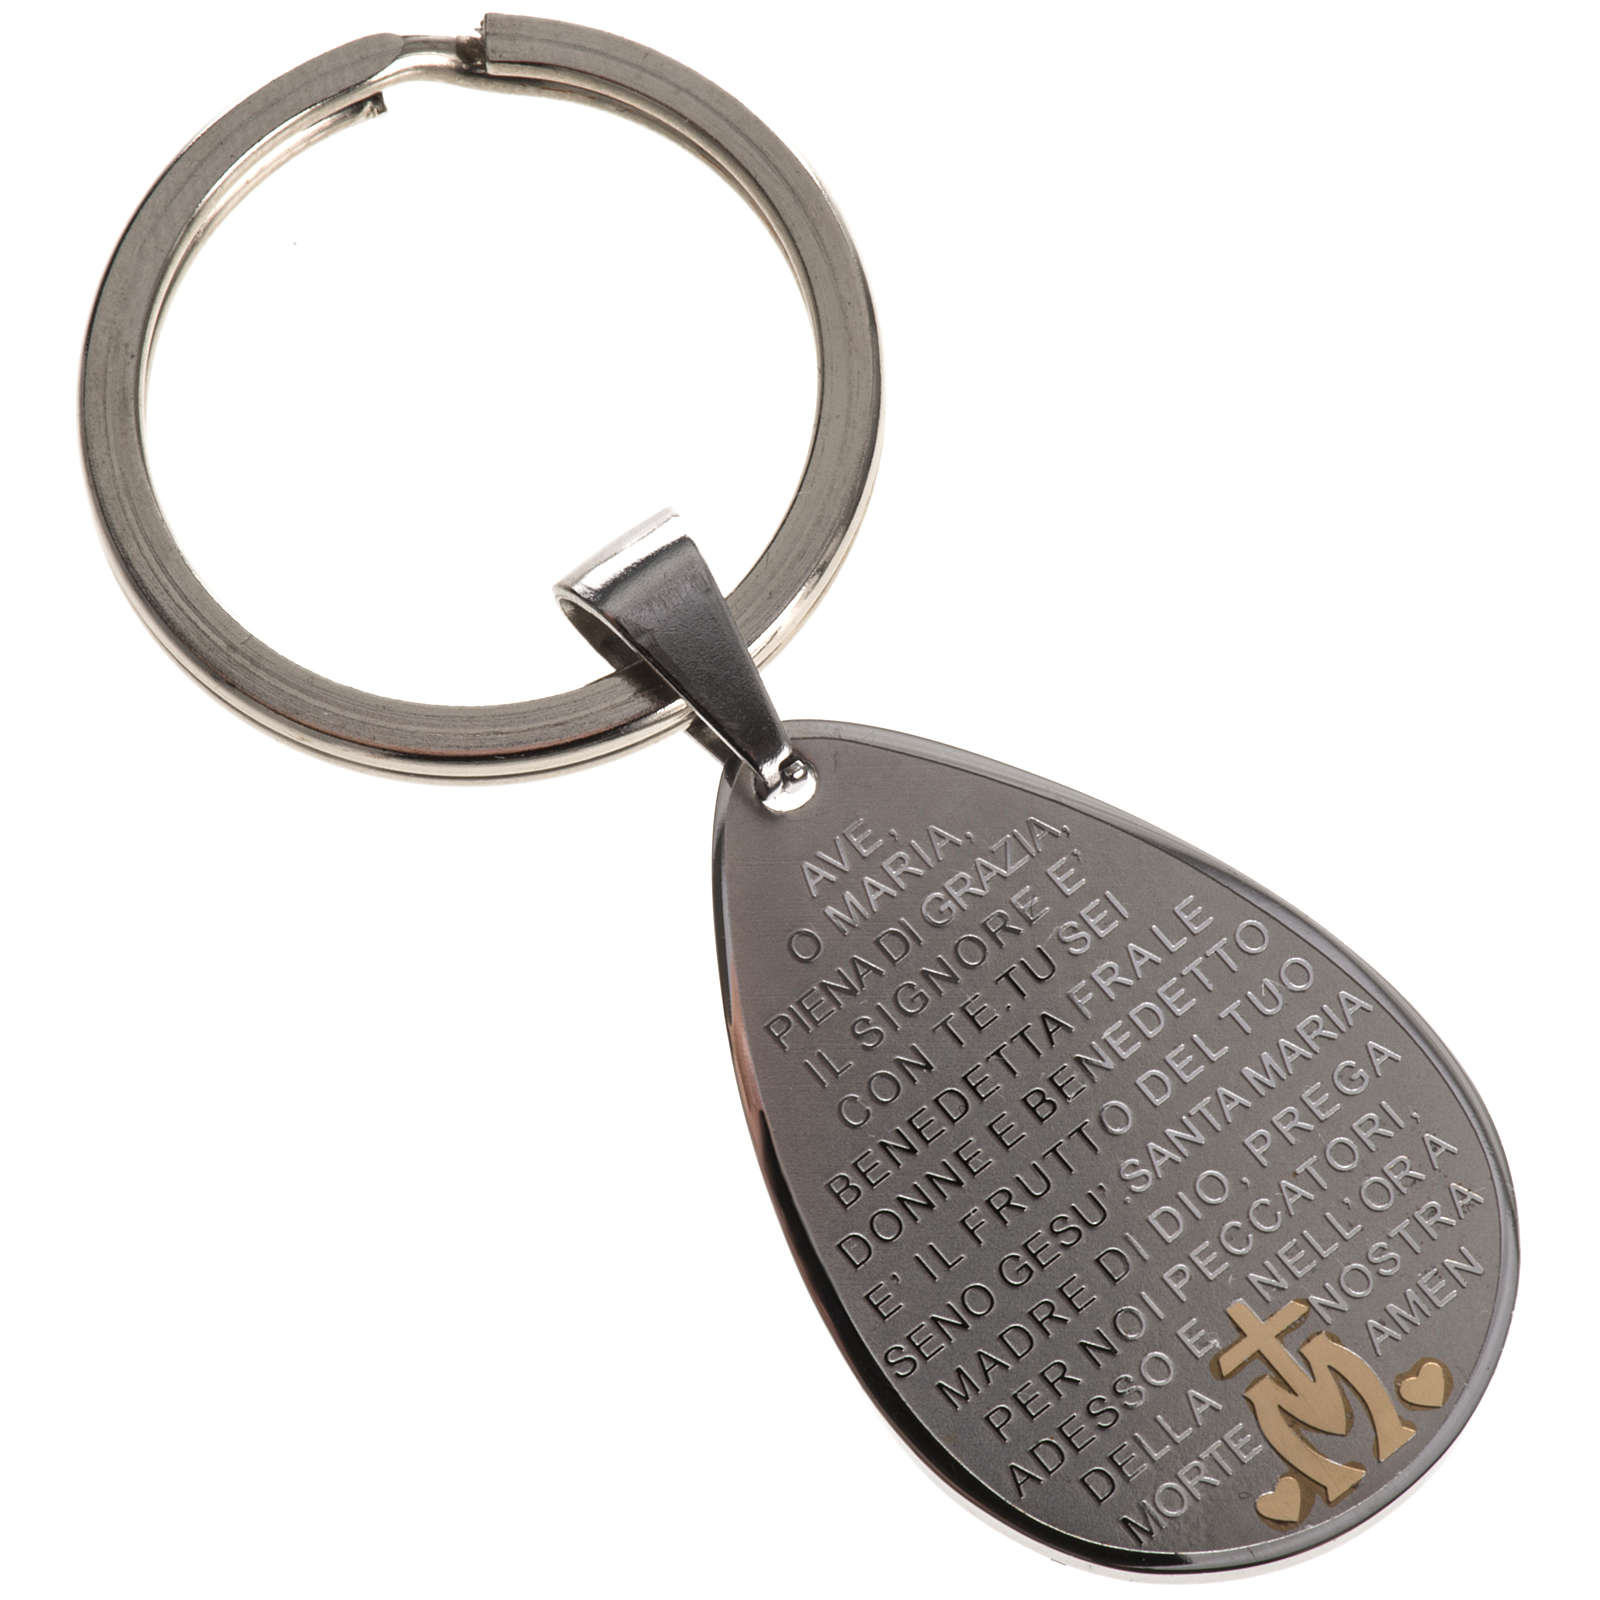 Hail Mary prayer key ring drop shaped 3